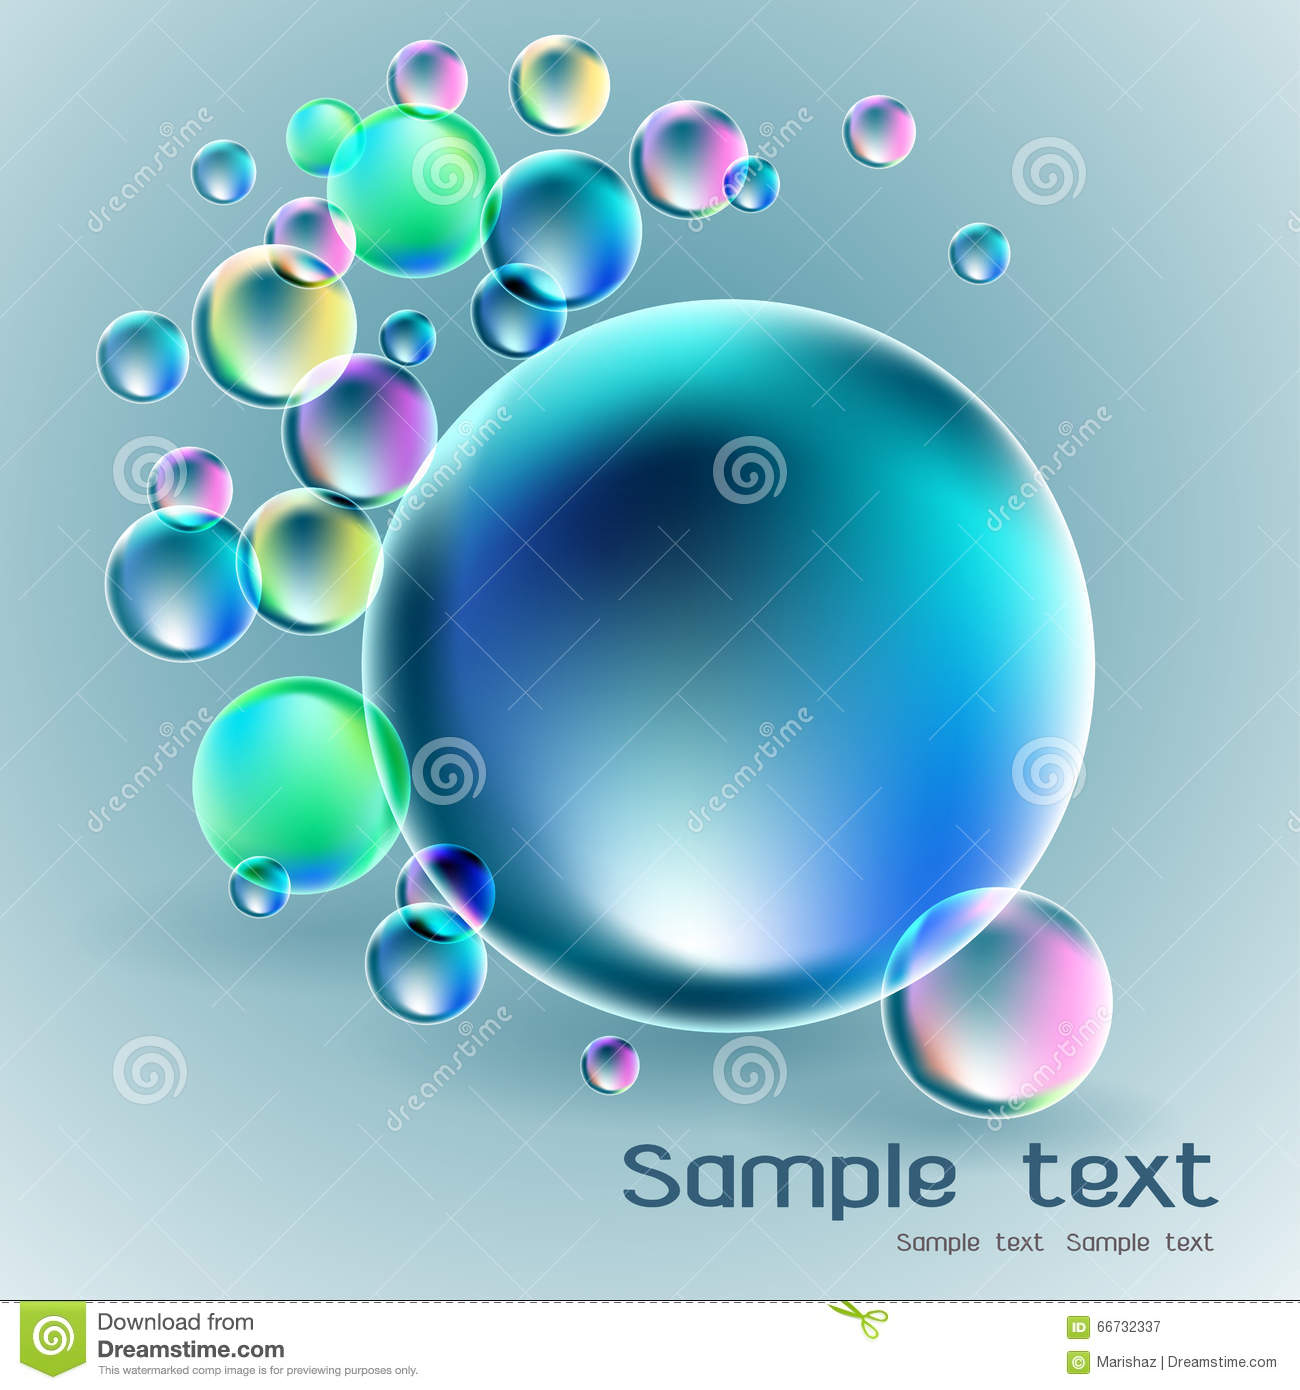 Soap bubble background download free vector art stock graphics - Transparent Soap Bubble On Gray Background Stock Vector